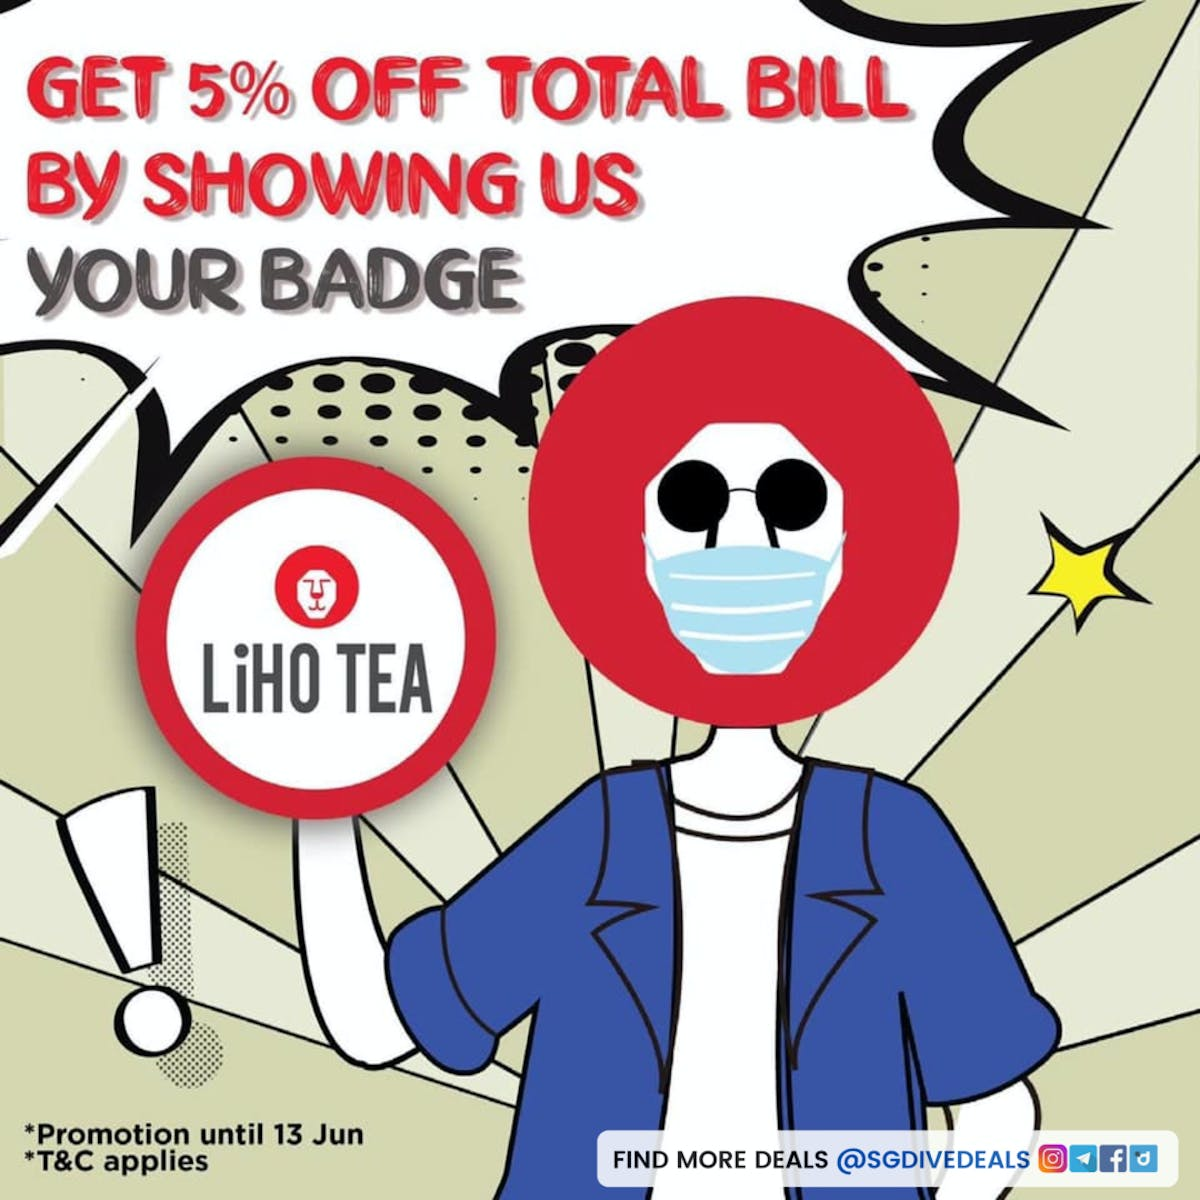 LiHO Tea's do you have a badge promotion, 5% off bubble tea